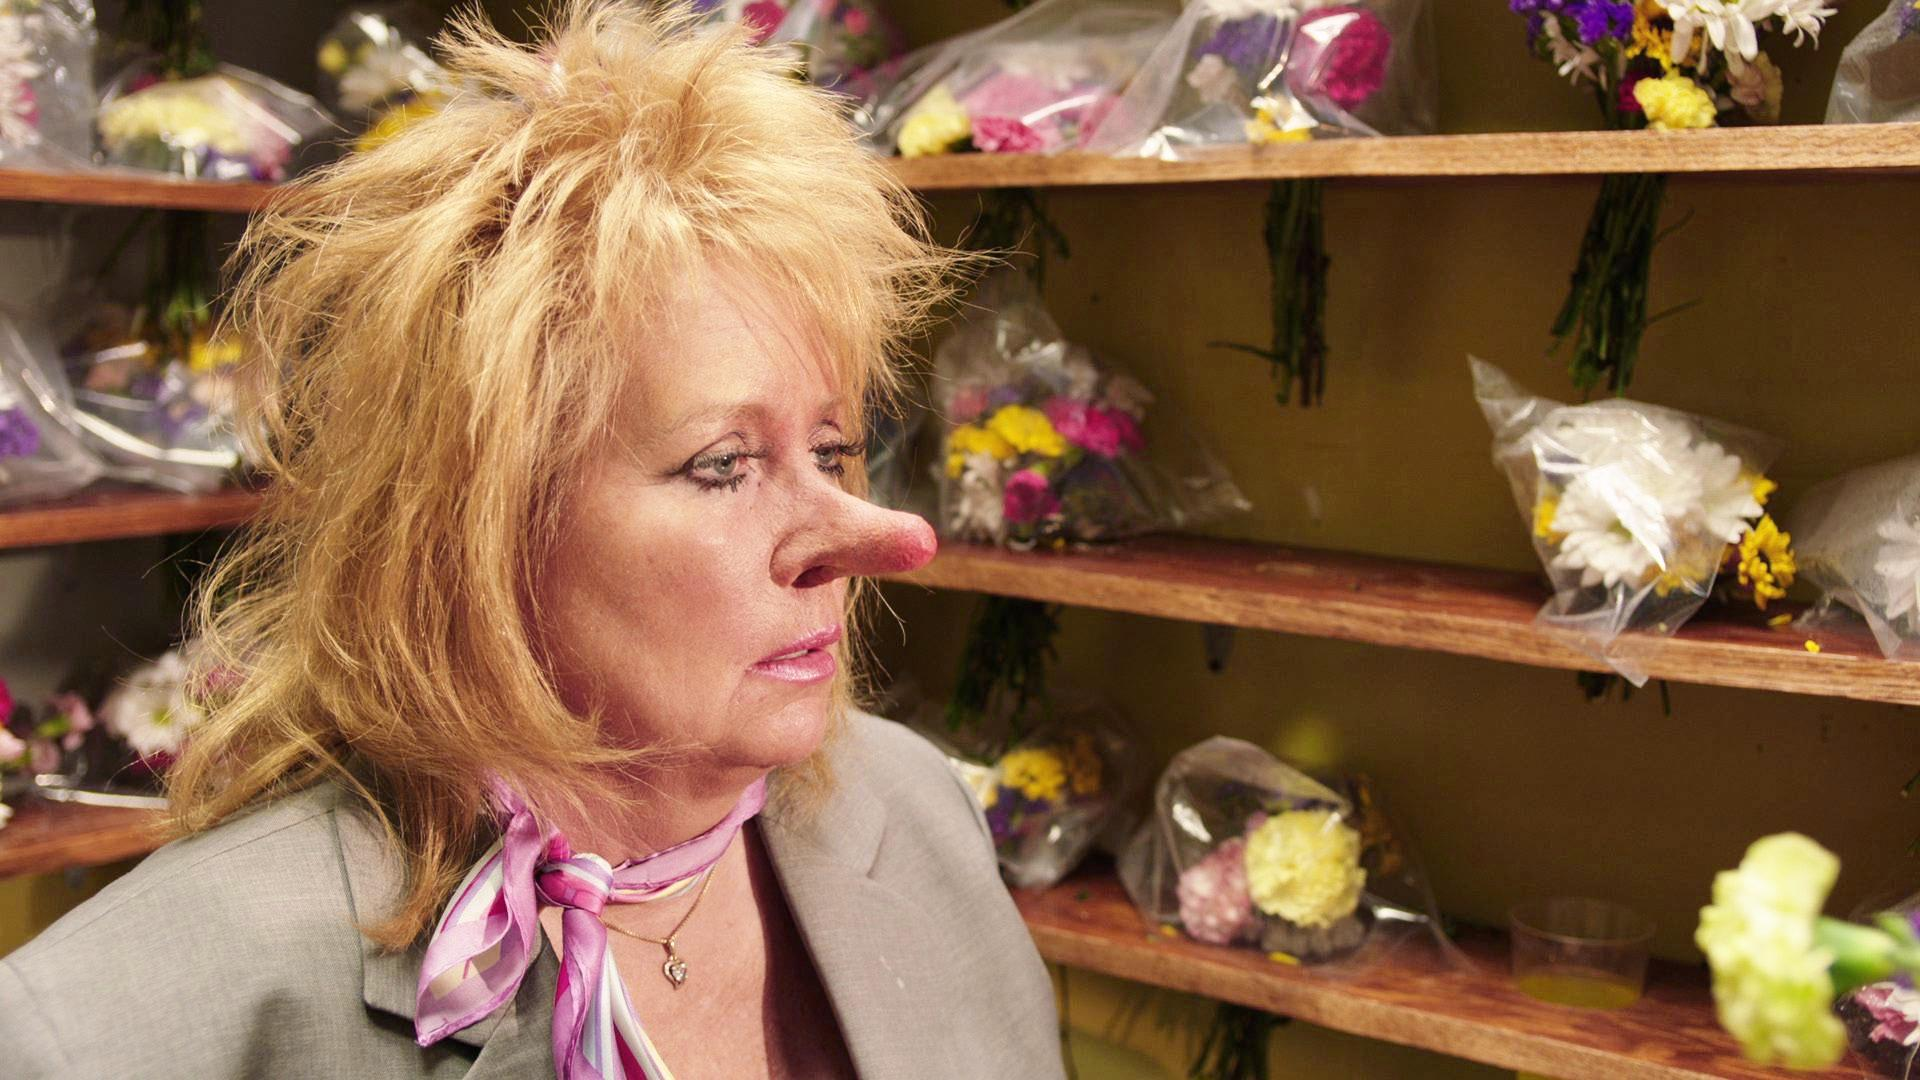 A woman with disheveled blonde hair and a comically long, pink-tipped nose is seen in front of wooden shelves of flower bouquets.